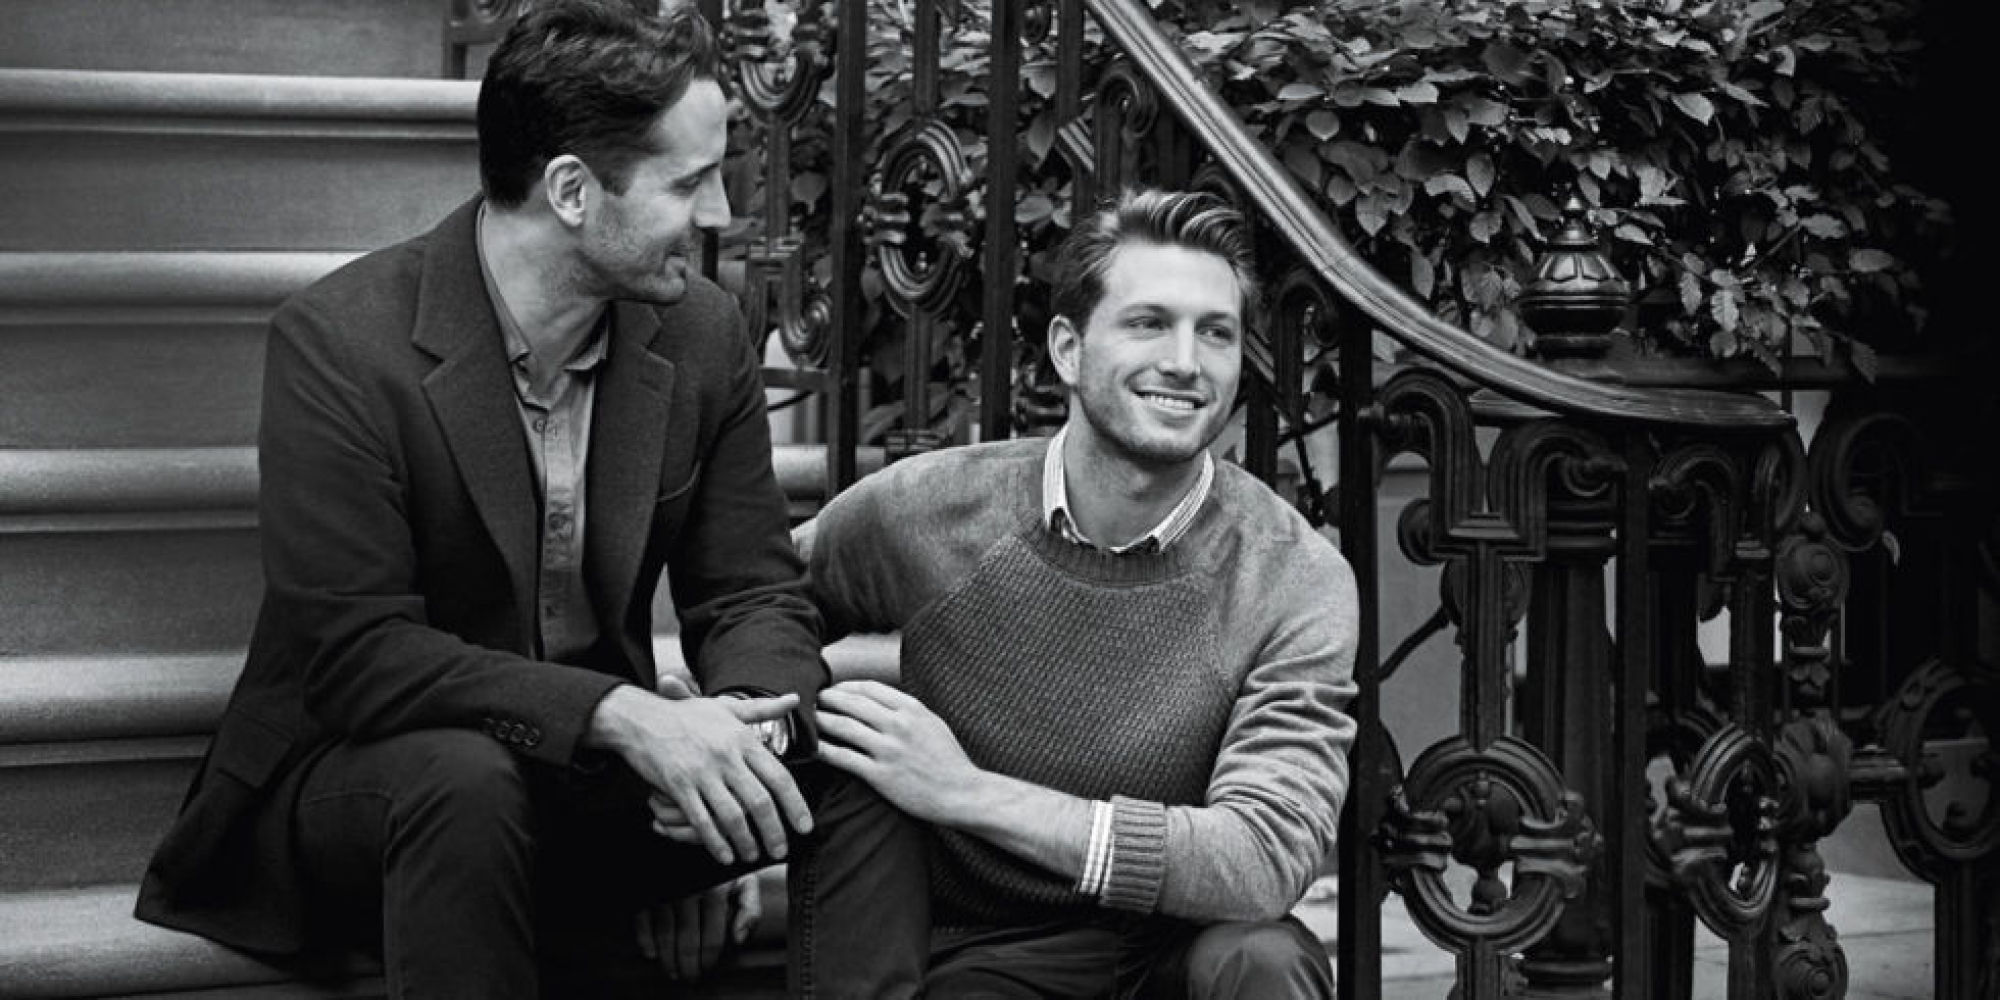 tiffany gay ad n gay mens wedding rings Tiffany Ad Features Gay Couple Rings In New Year In A Big Way HuffPost